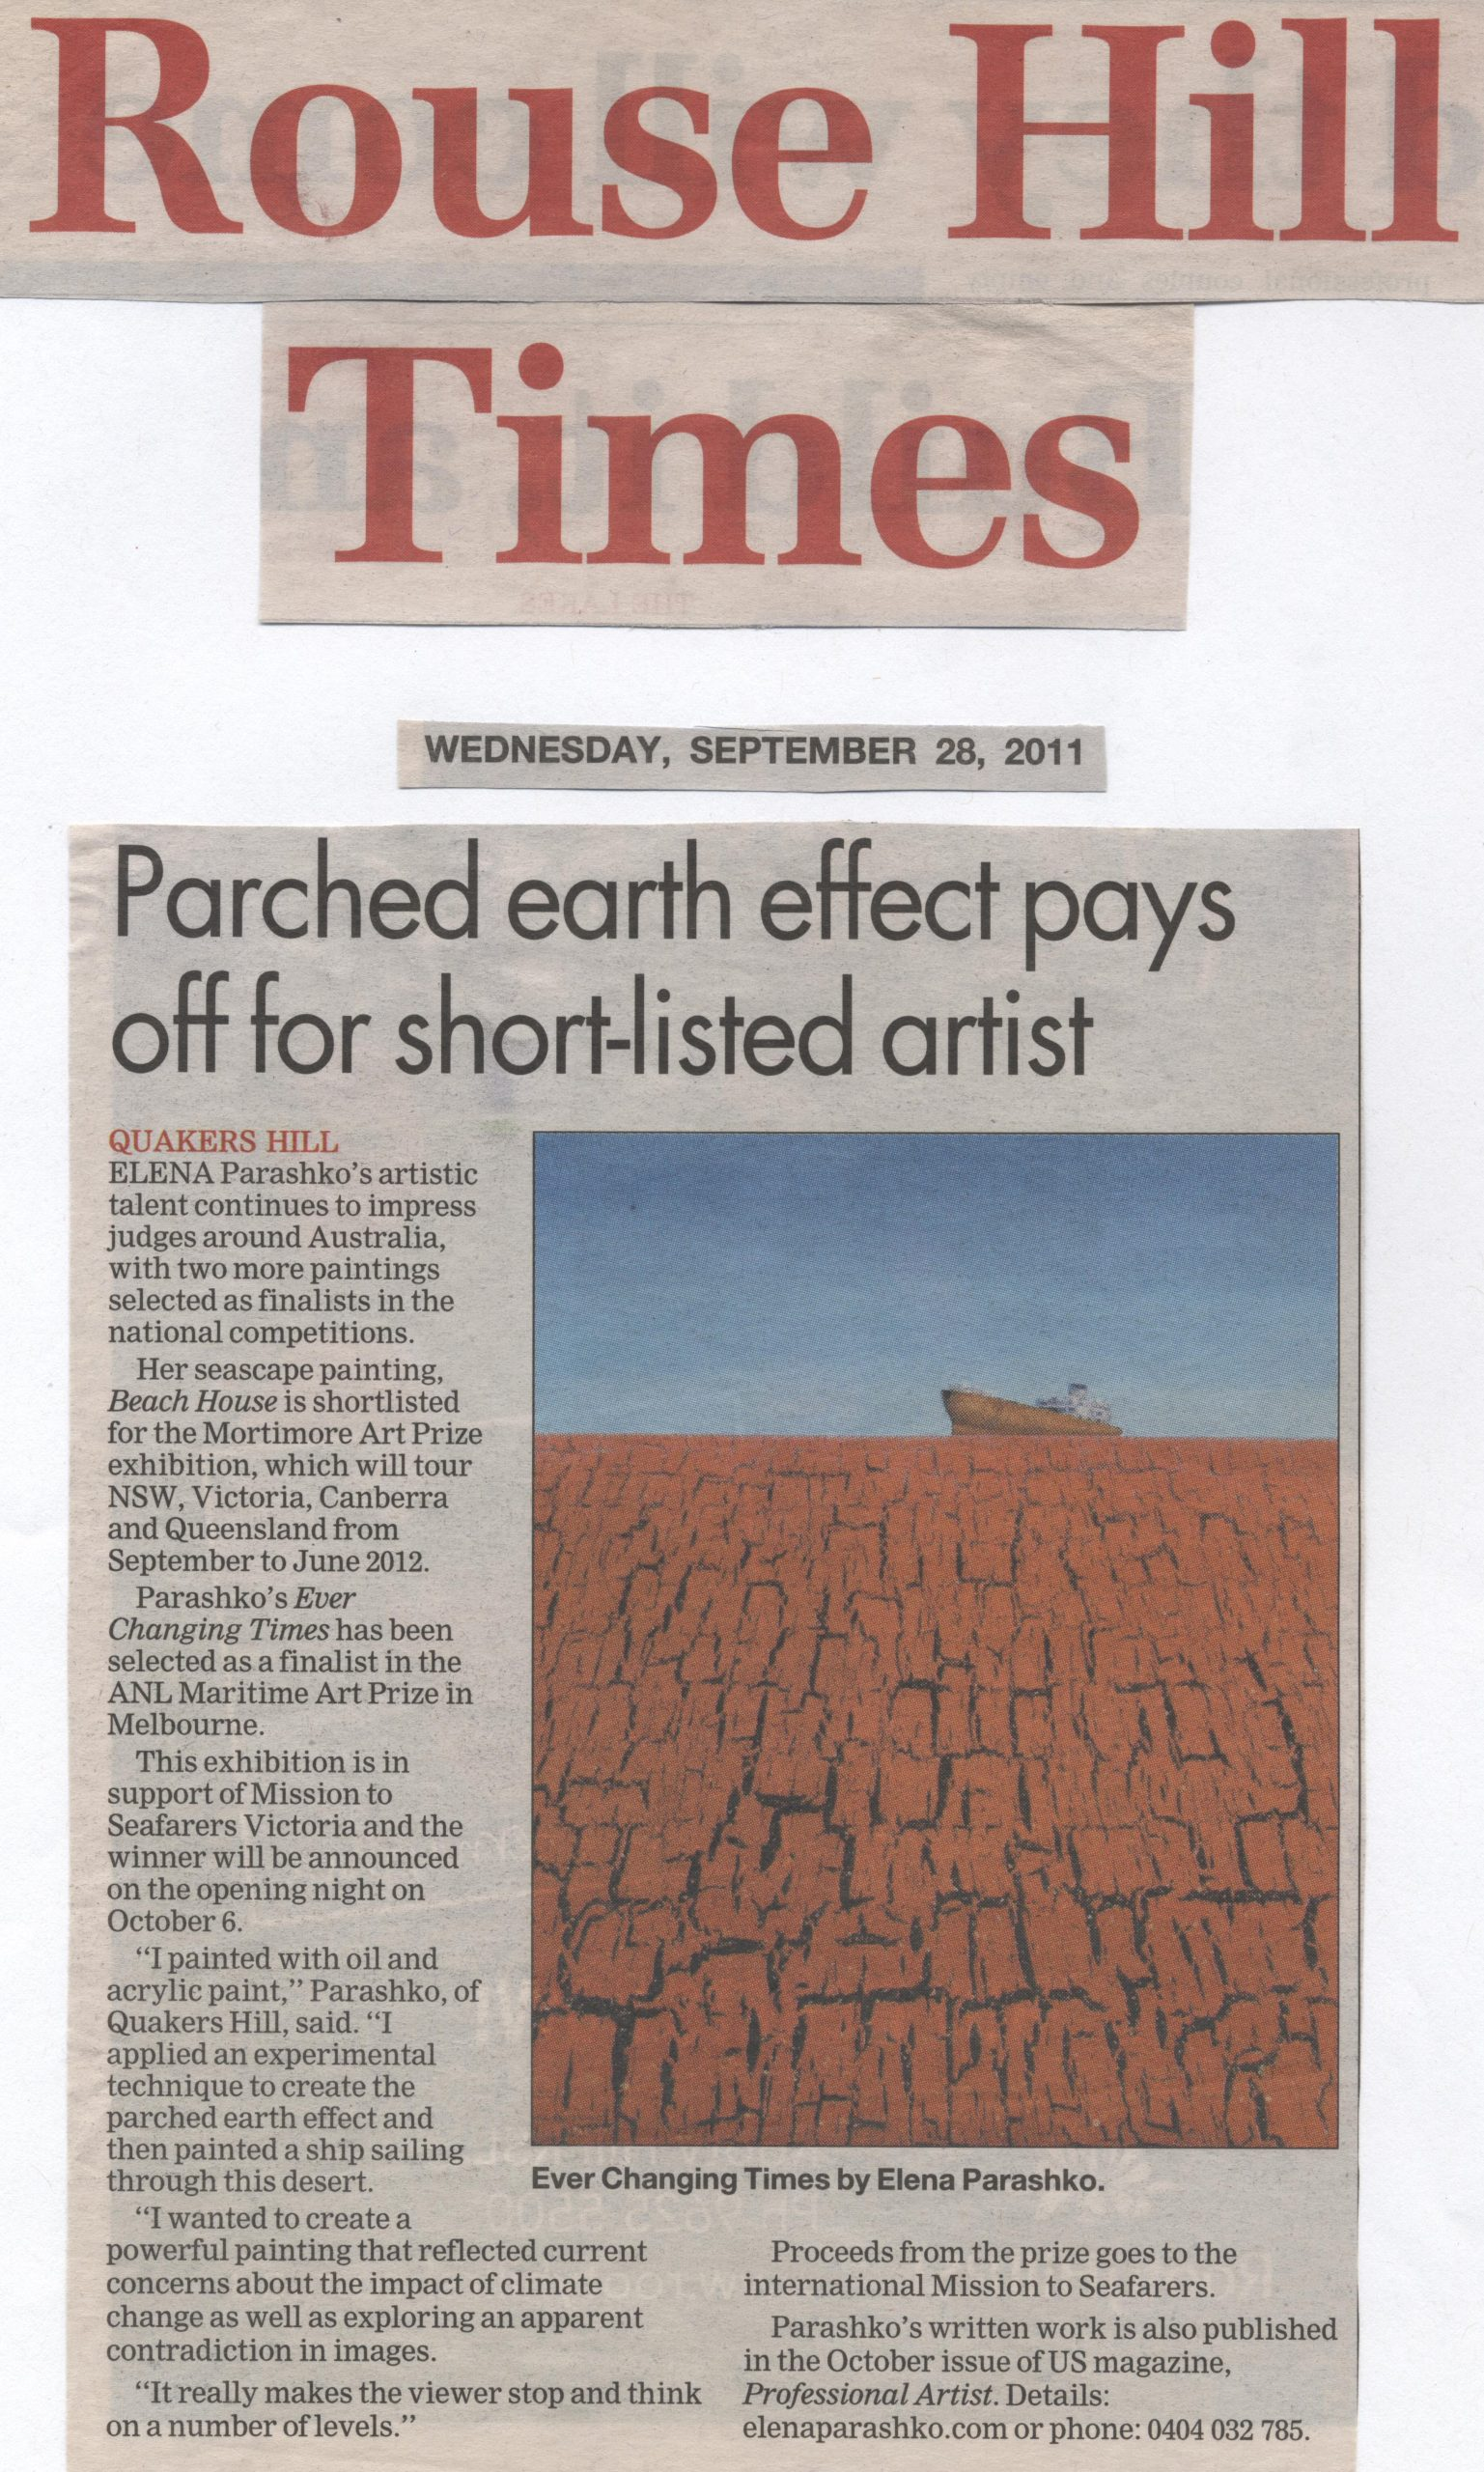 parched earth effect